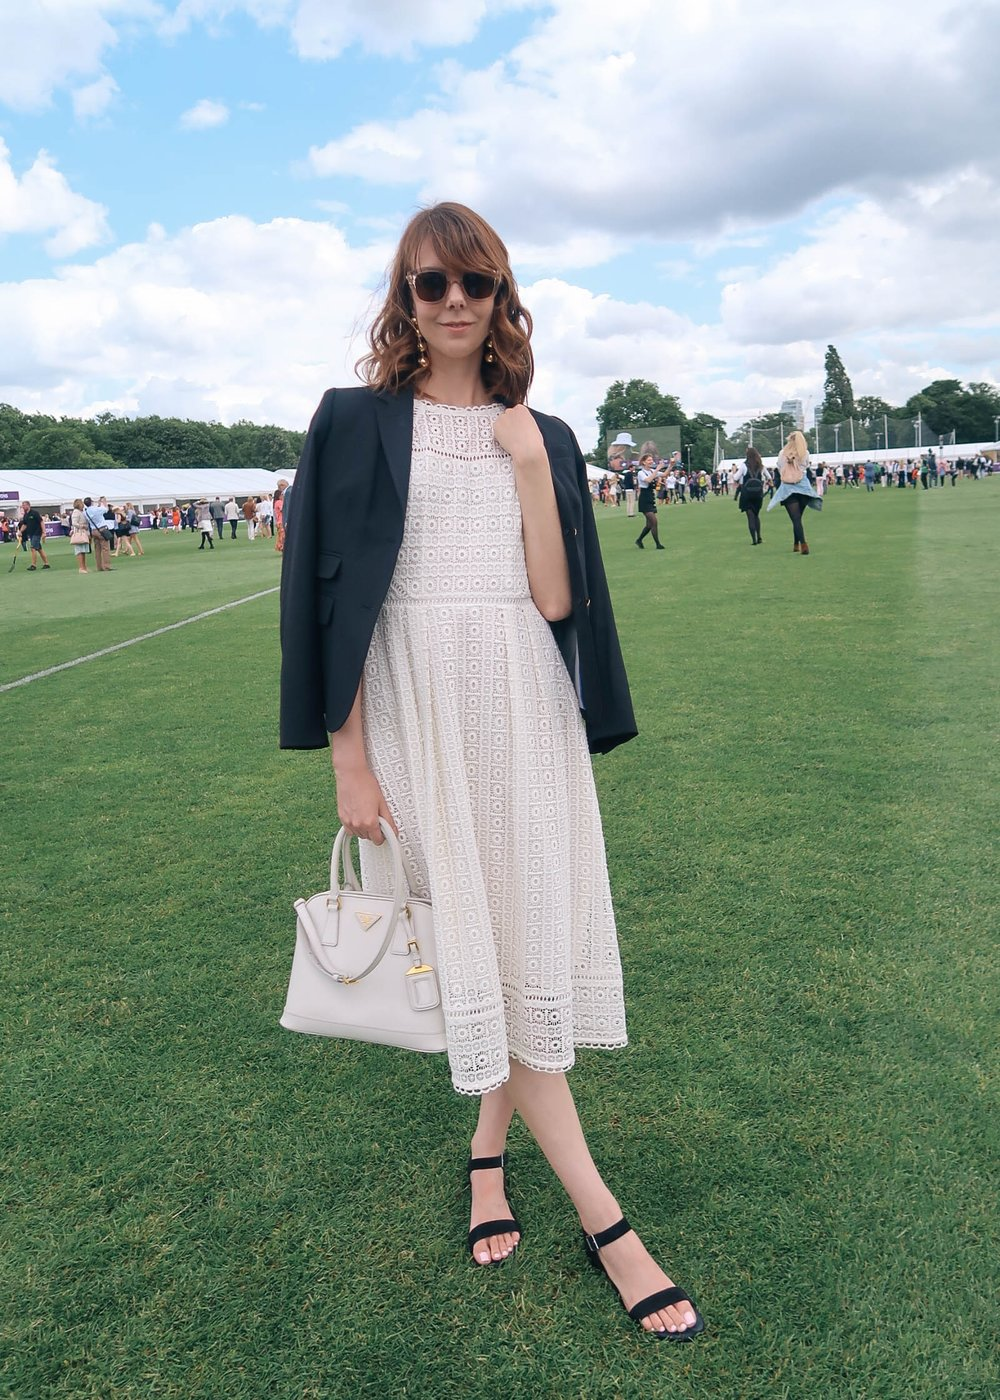 7 Polo Terms to Know and What To Wear to a Polo Match | Sundays and Somedays